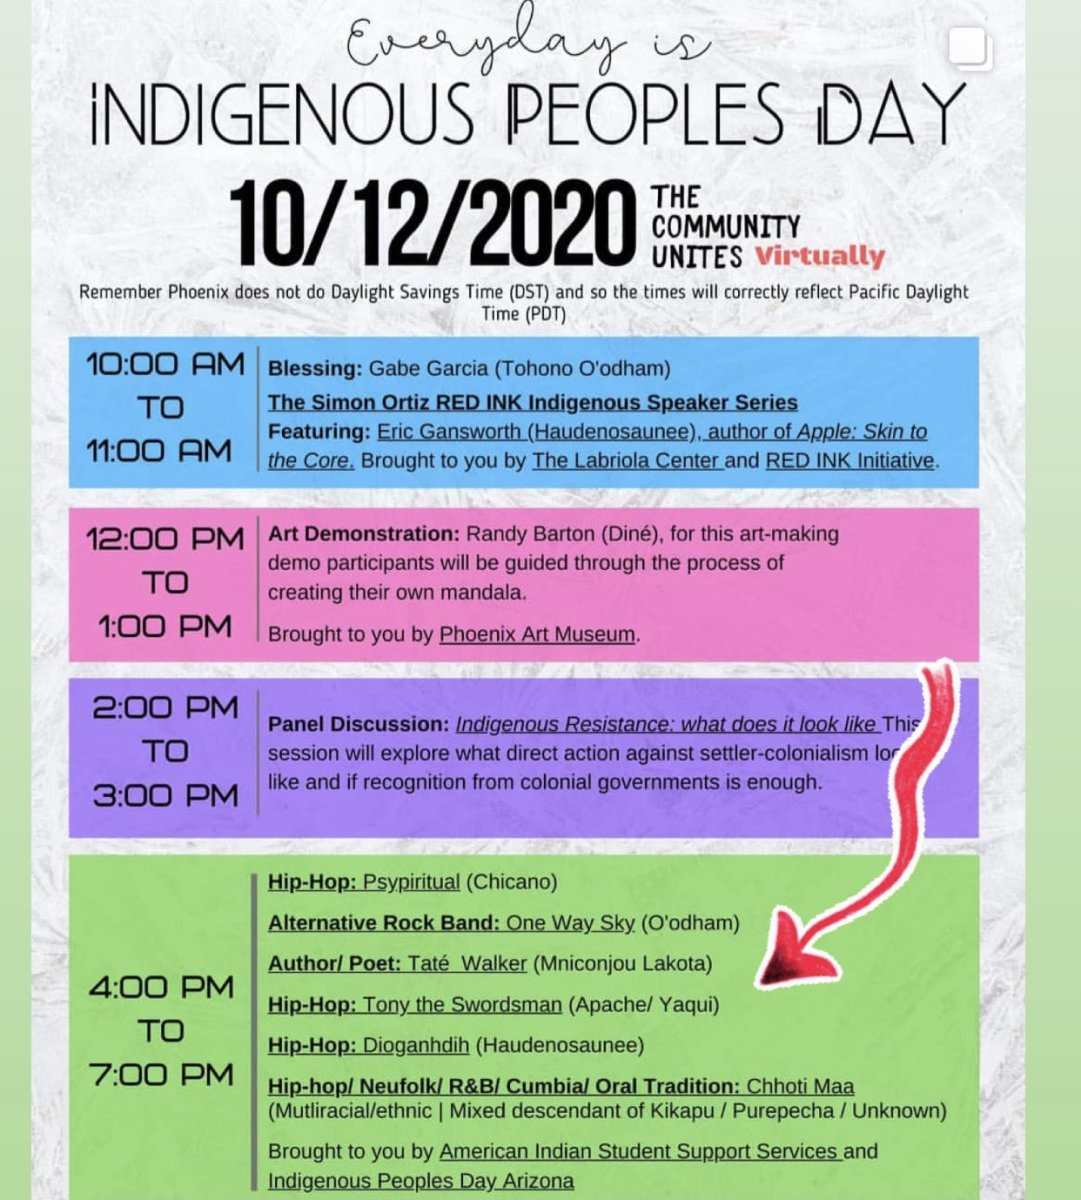 Everyday is Indigenous Peoples Day